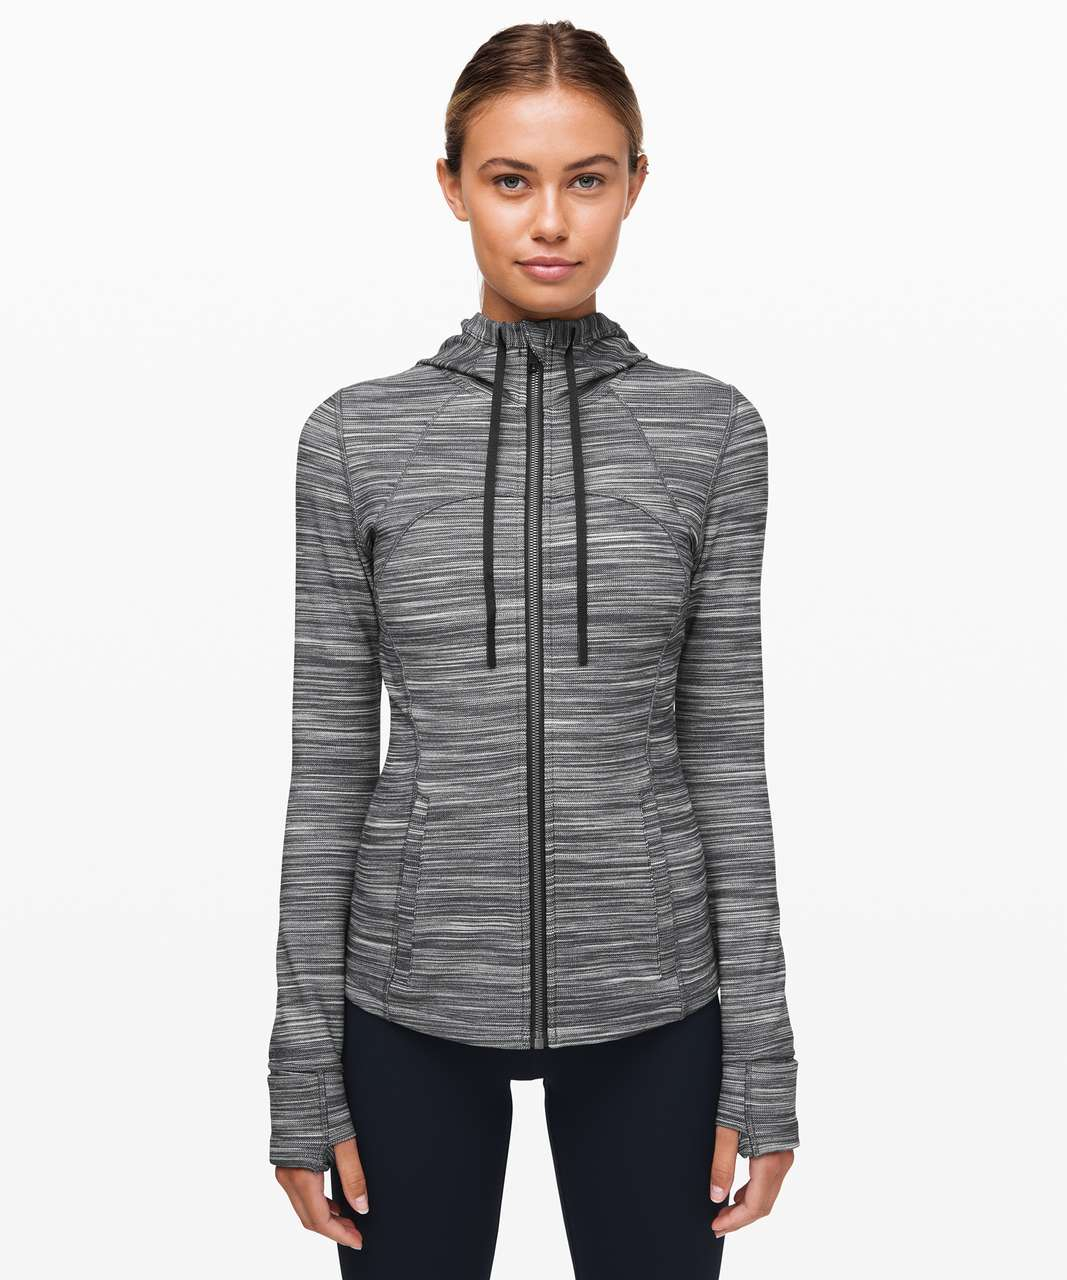 Lululemon Hooded Define Jacket *Nulu - Heathered Black / White / Black